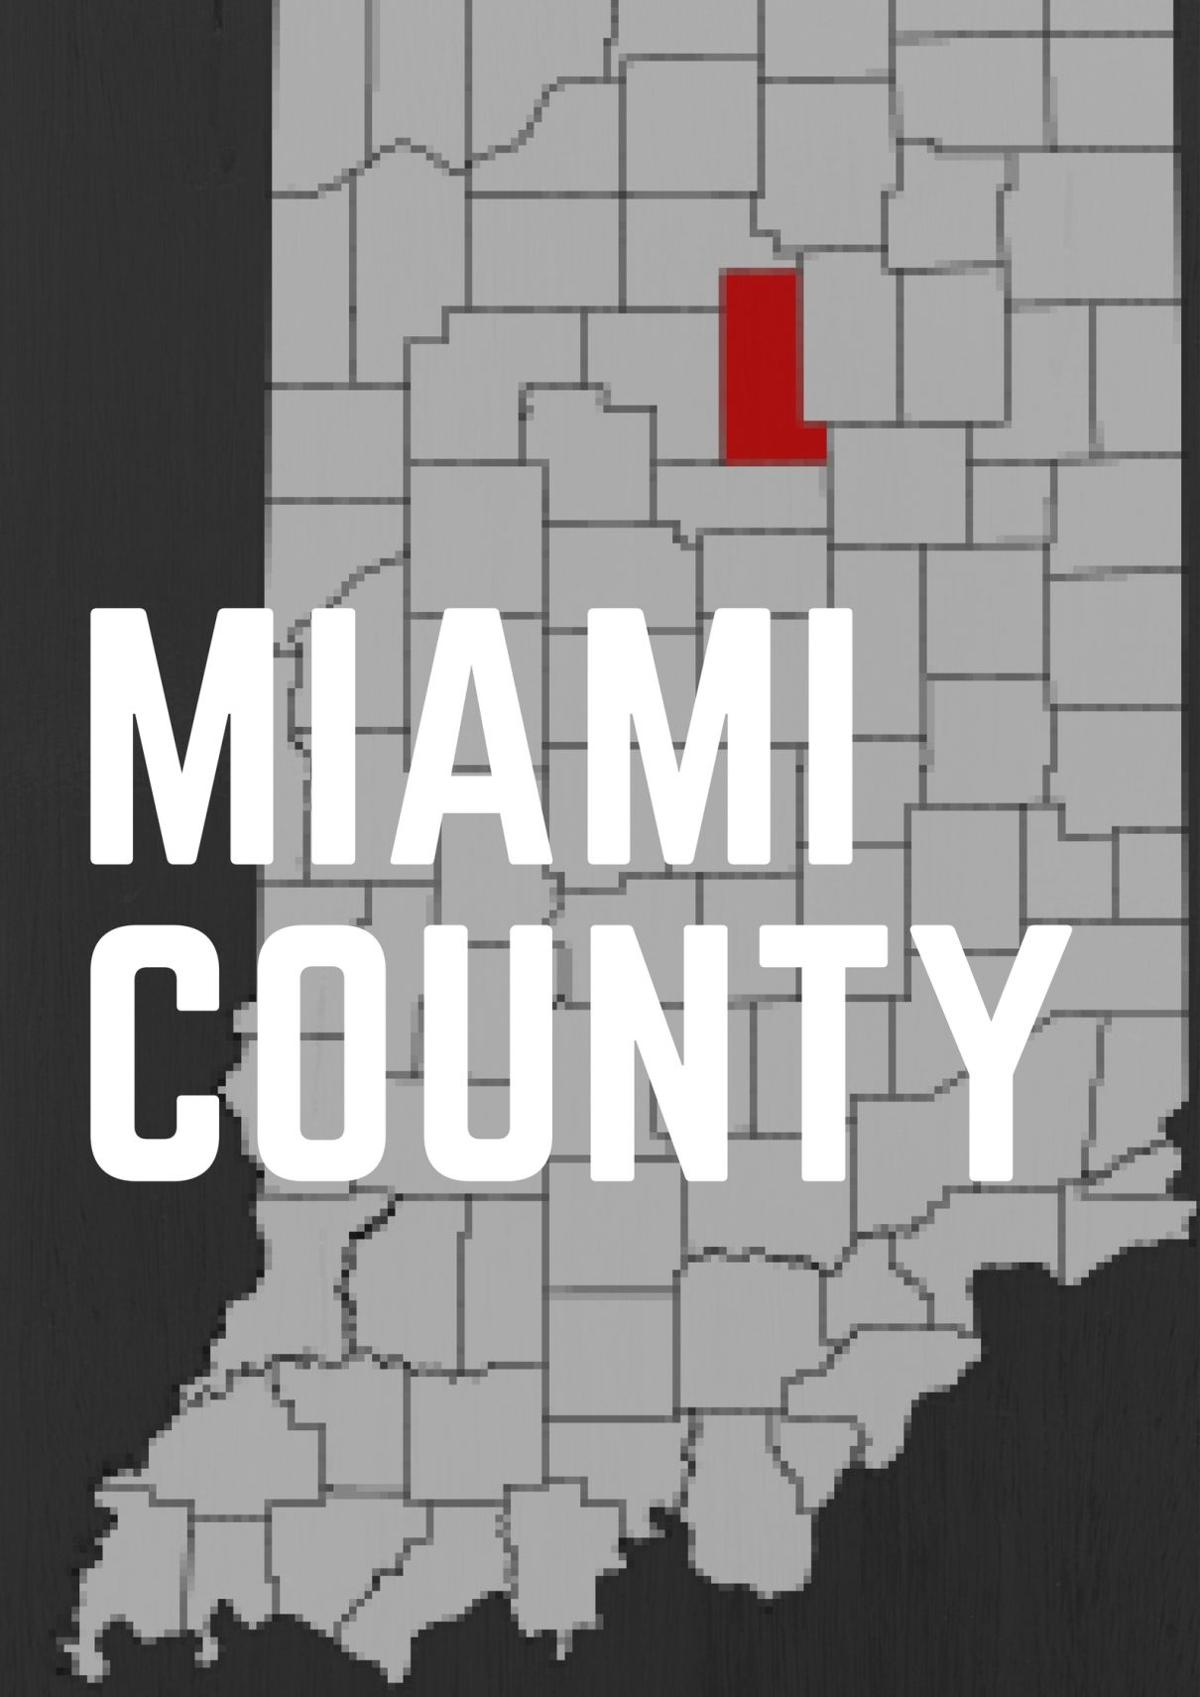 Miami County Graphic (map)